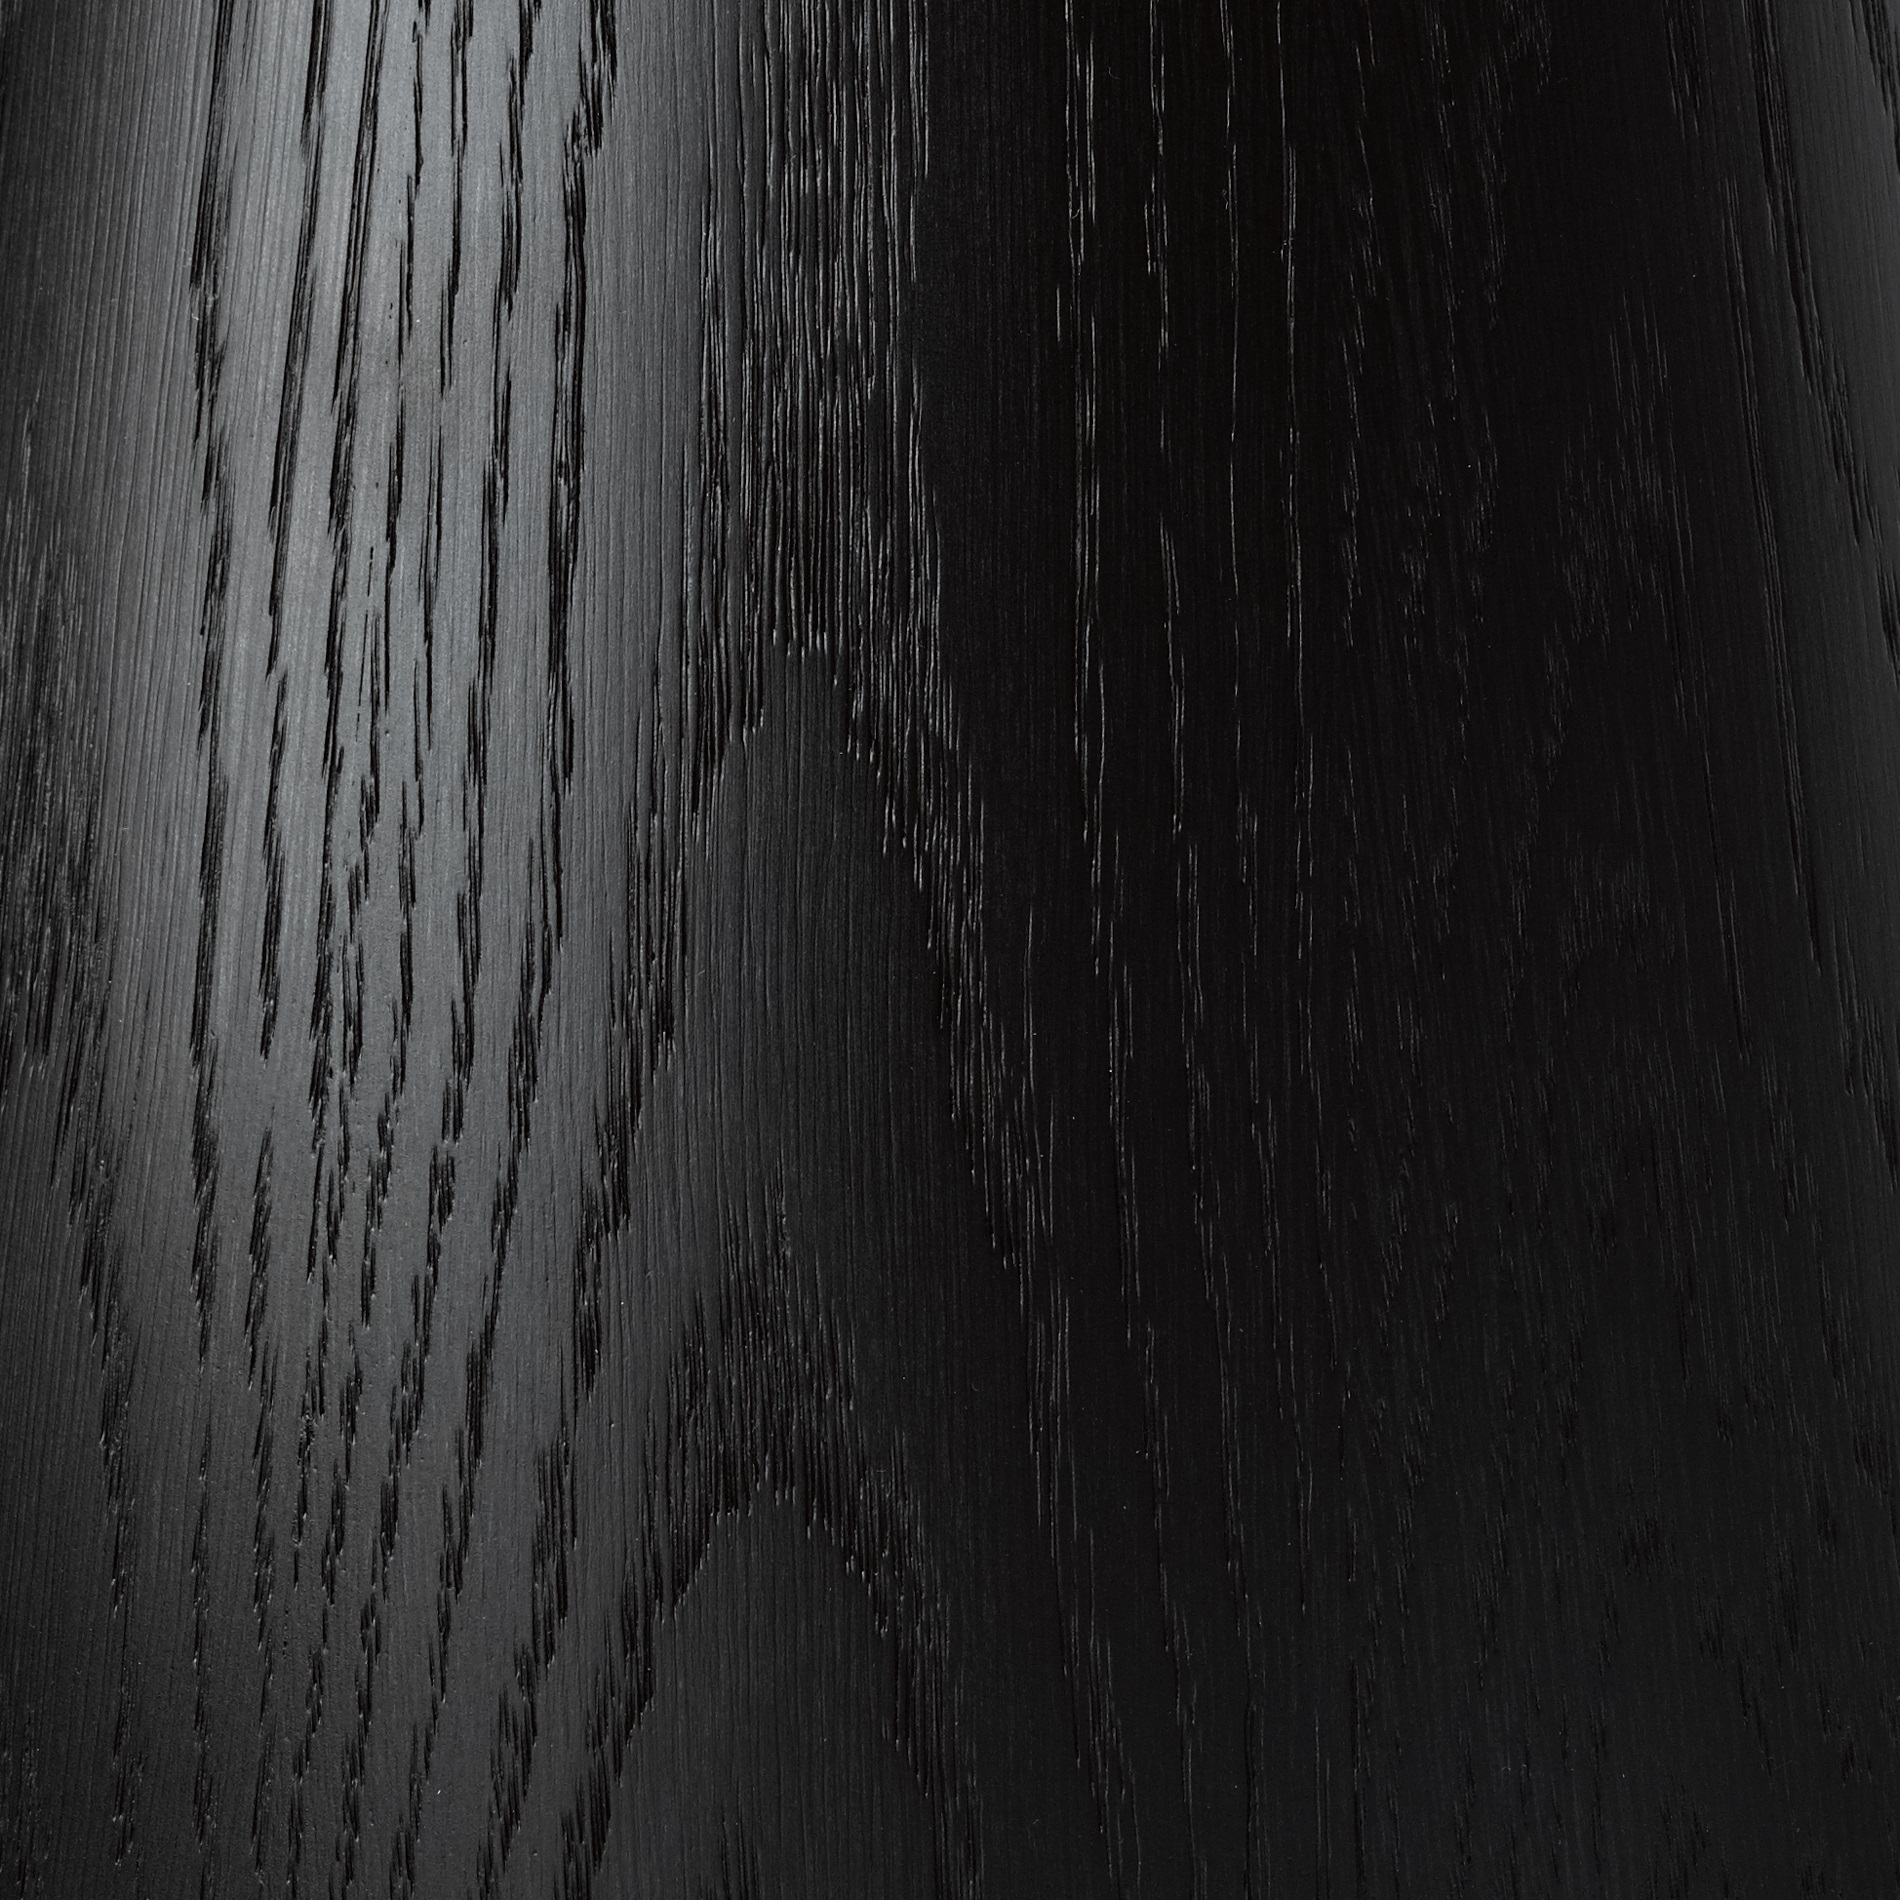 EBONISED OAK - Stained to a deep black, and lightly brushed to leave the grain open and visible. Finished with a clear lacquer to a 10% sheen level.